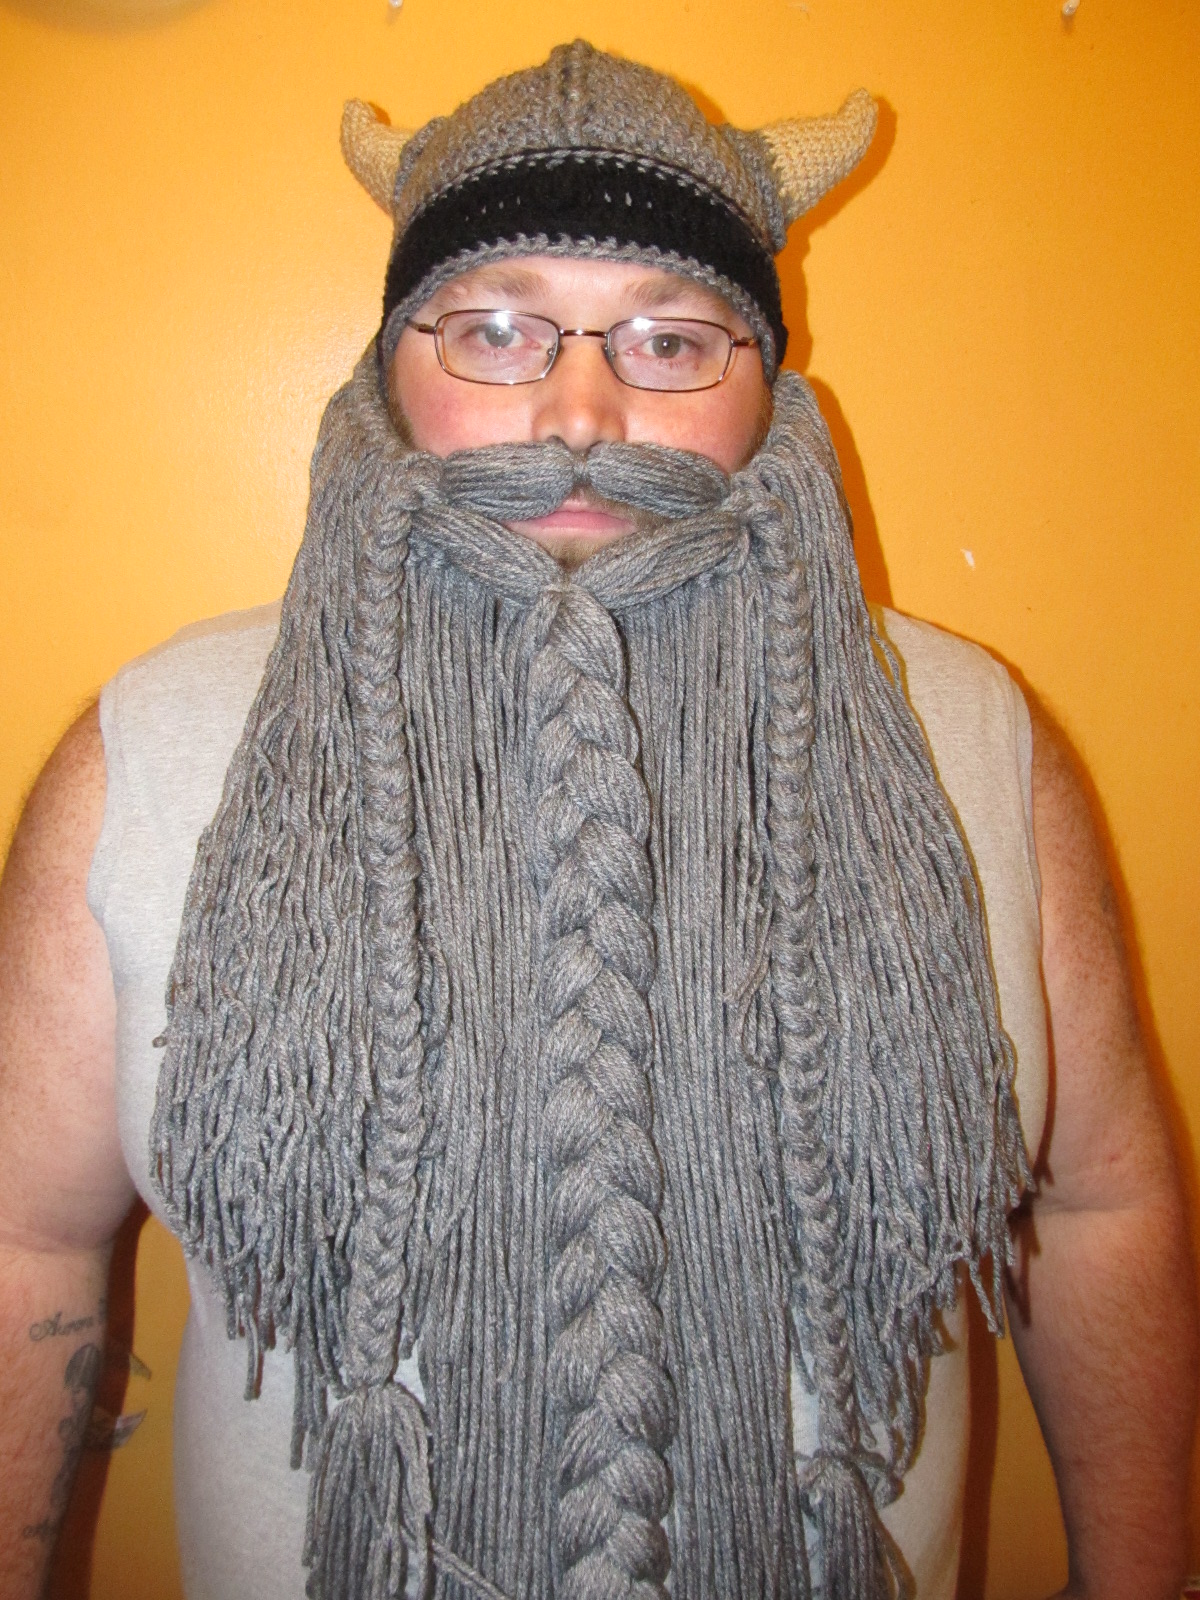 Simply crochet and other crafts bearded viking hat both patterns came from ravelry the beard pattern is a free pattern that i changed up just a bit i didnt like the way they did their mustache bankloansurffo Images